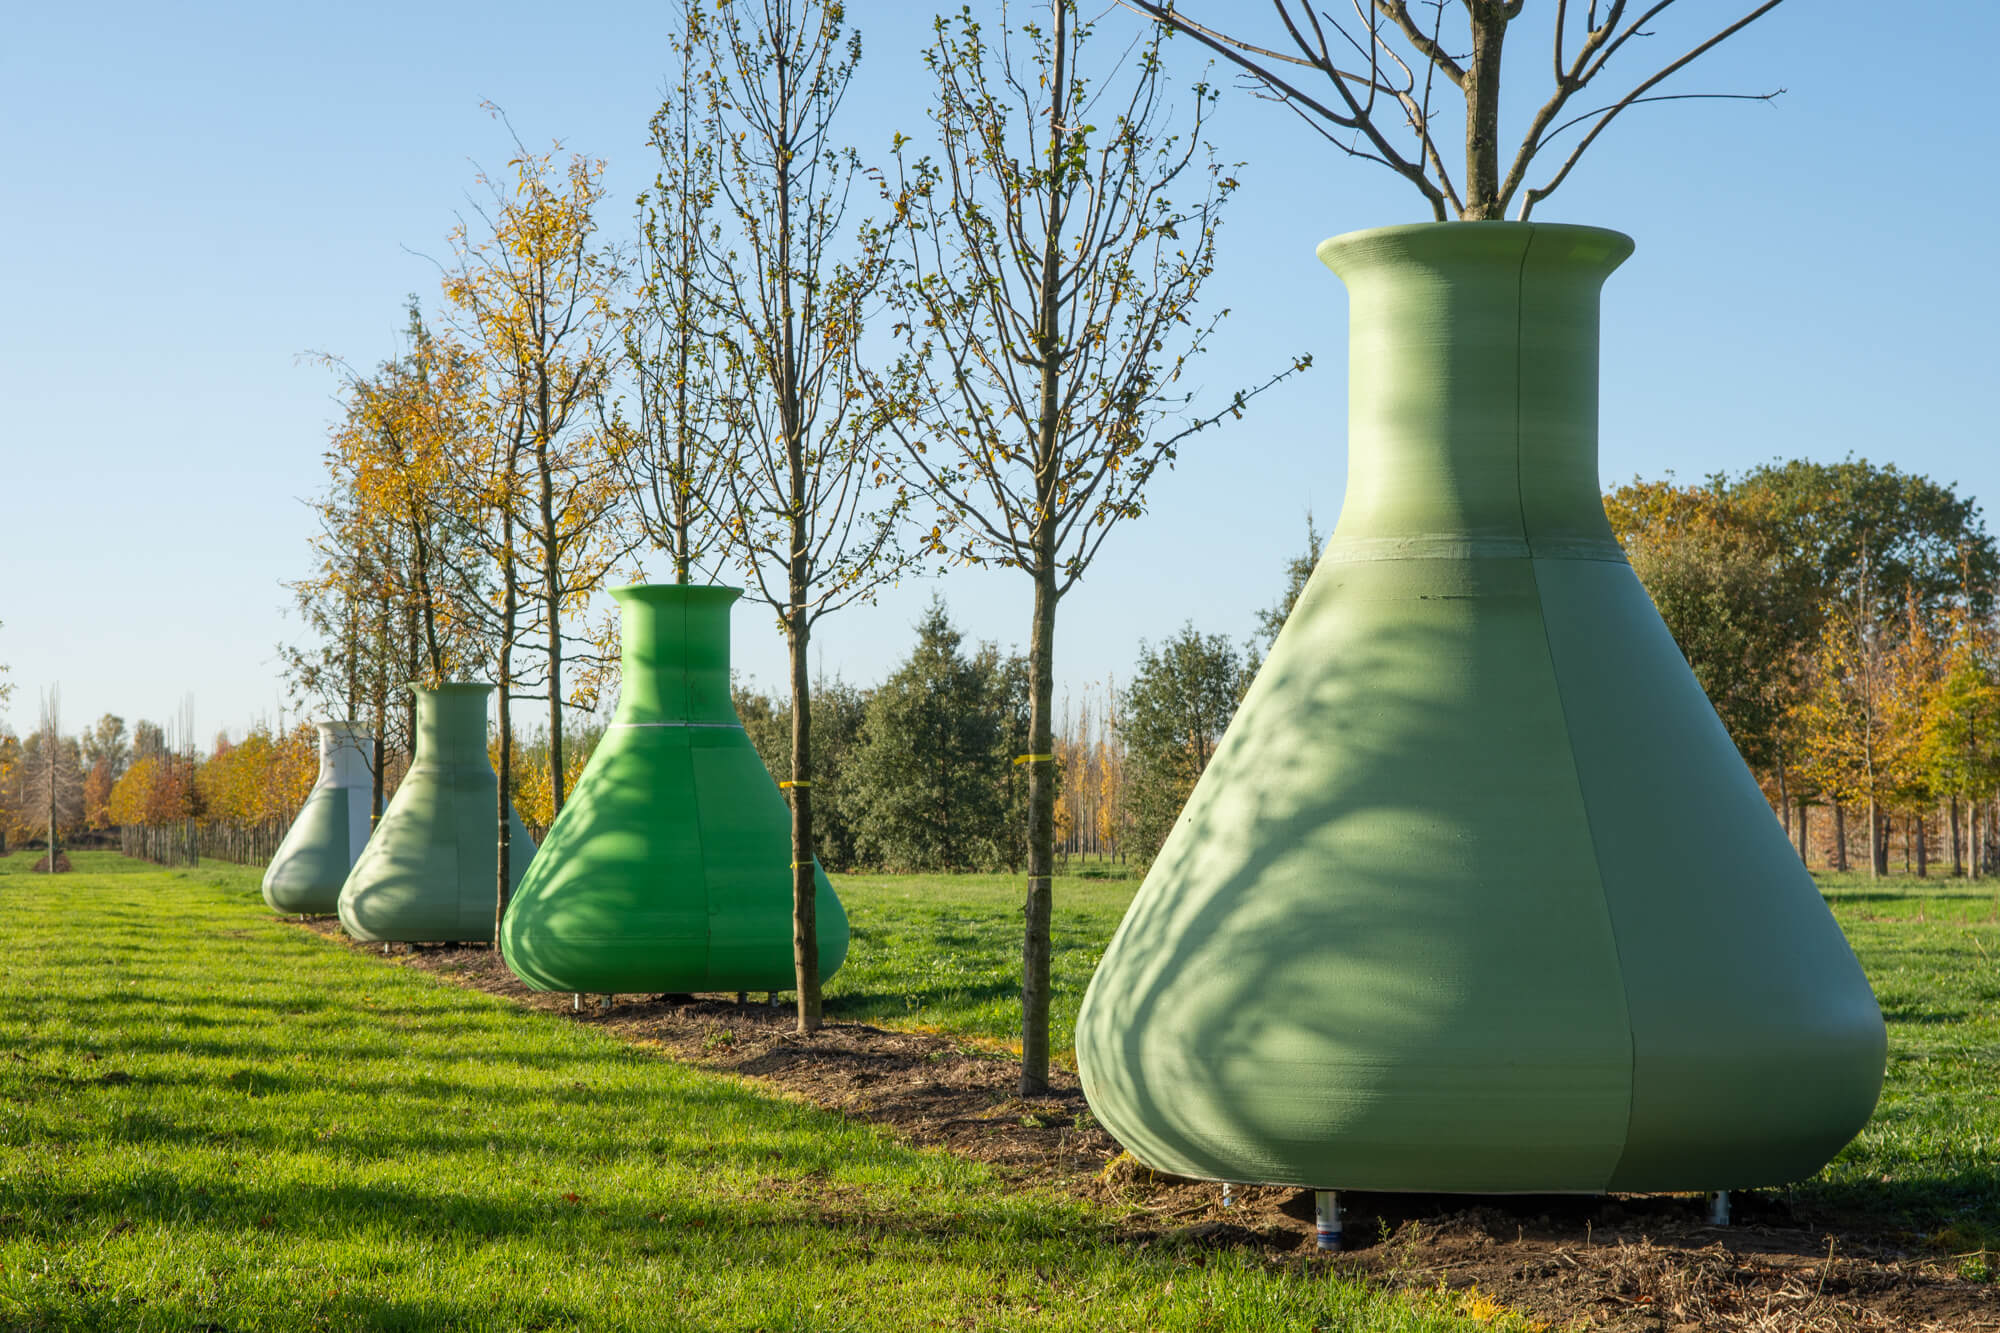 The 3D printed tree pots by Felixx Landscape Architects and Planners. Image via Felixx.